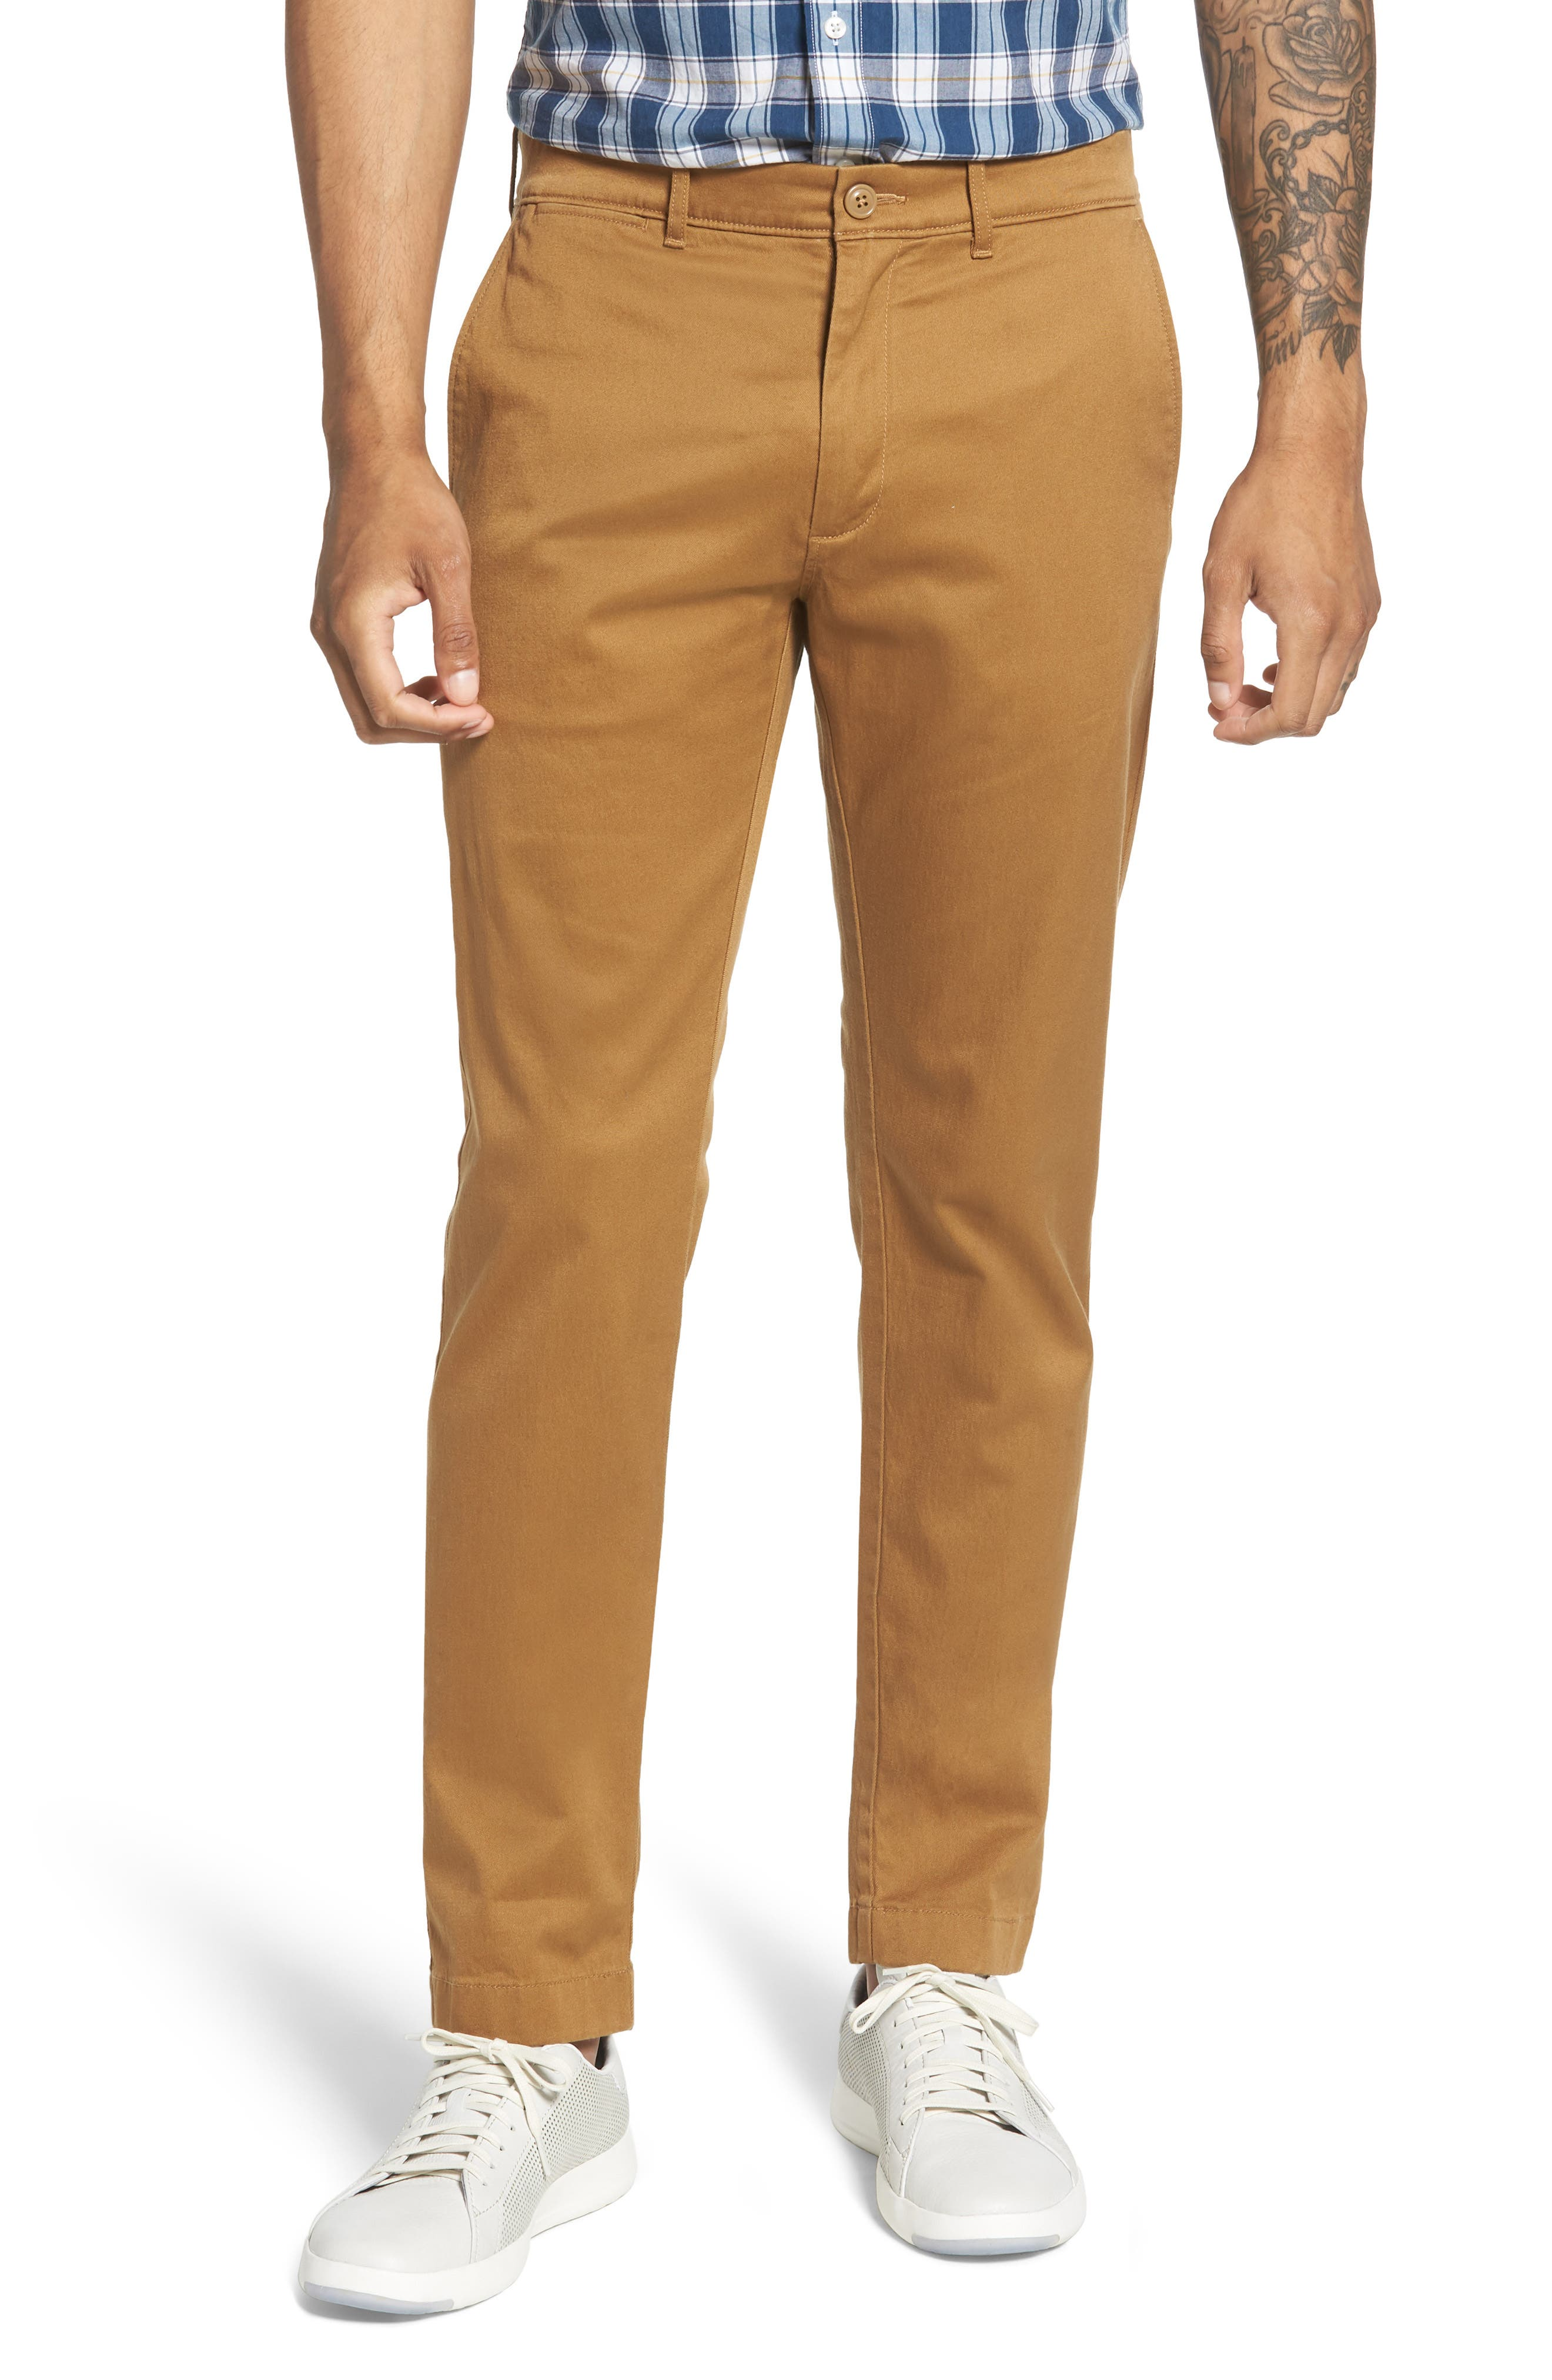 484 Slim Fit Stretch Chino Pants,                             Main thumbnail 5, color,